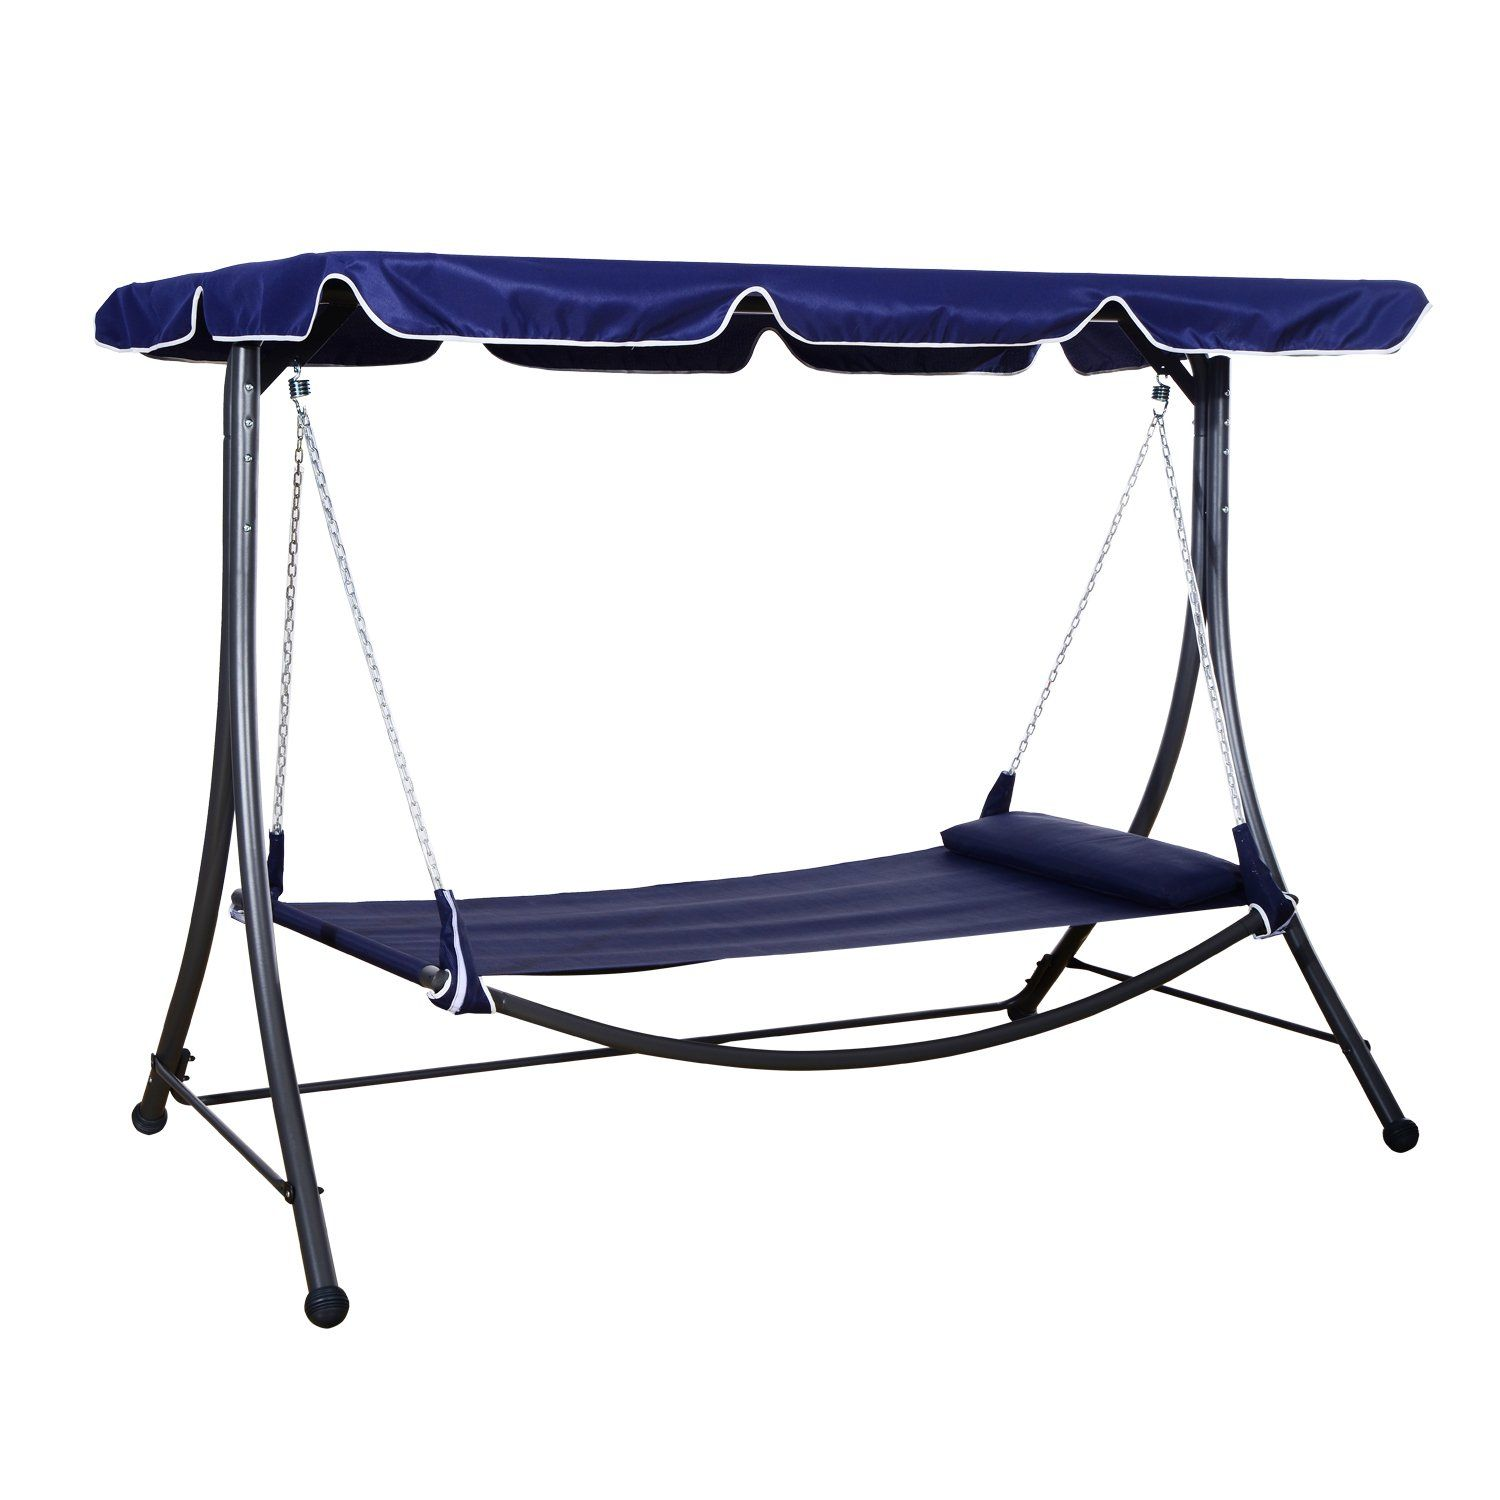 Outsunny patio pool hammock bed lounger with sun shade canopy lawn